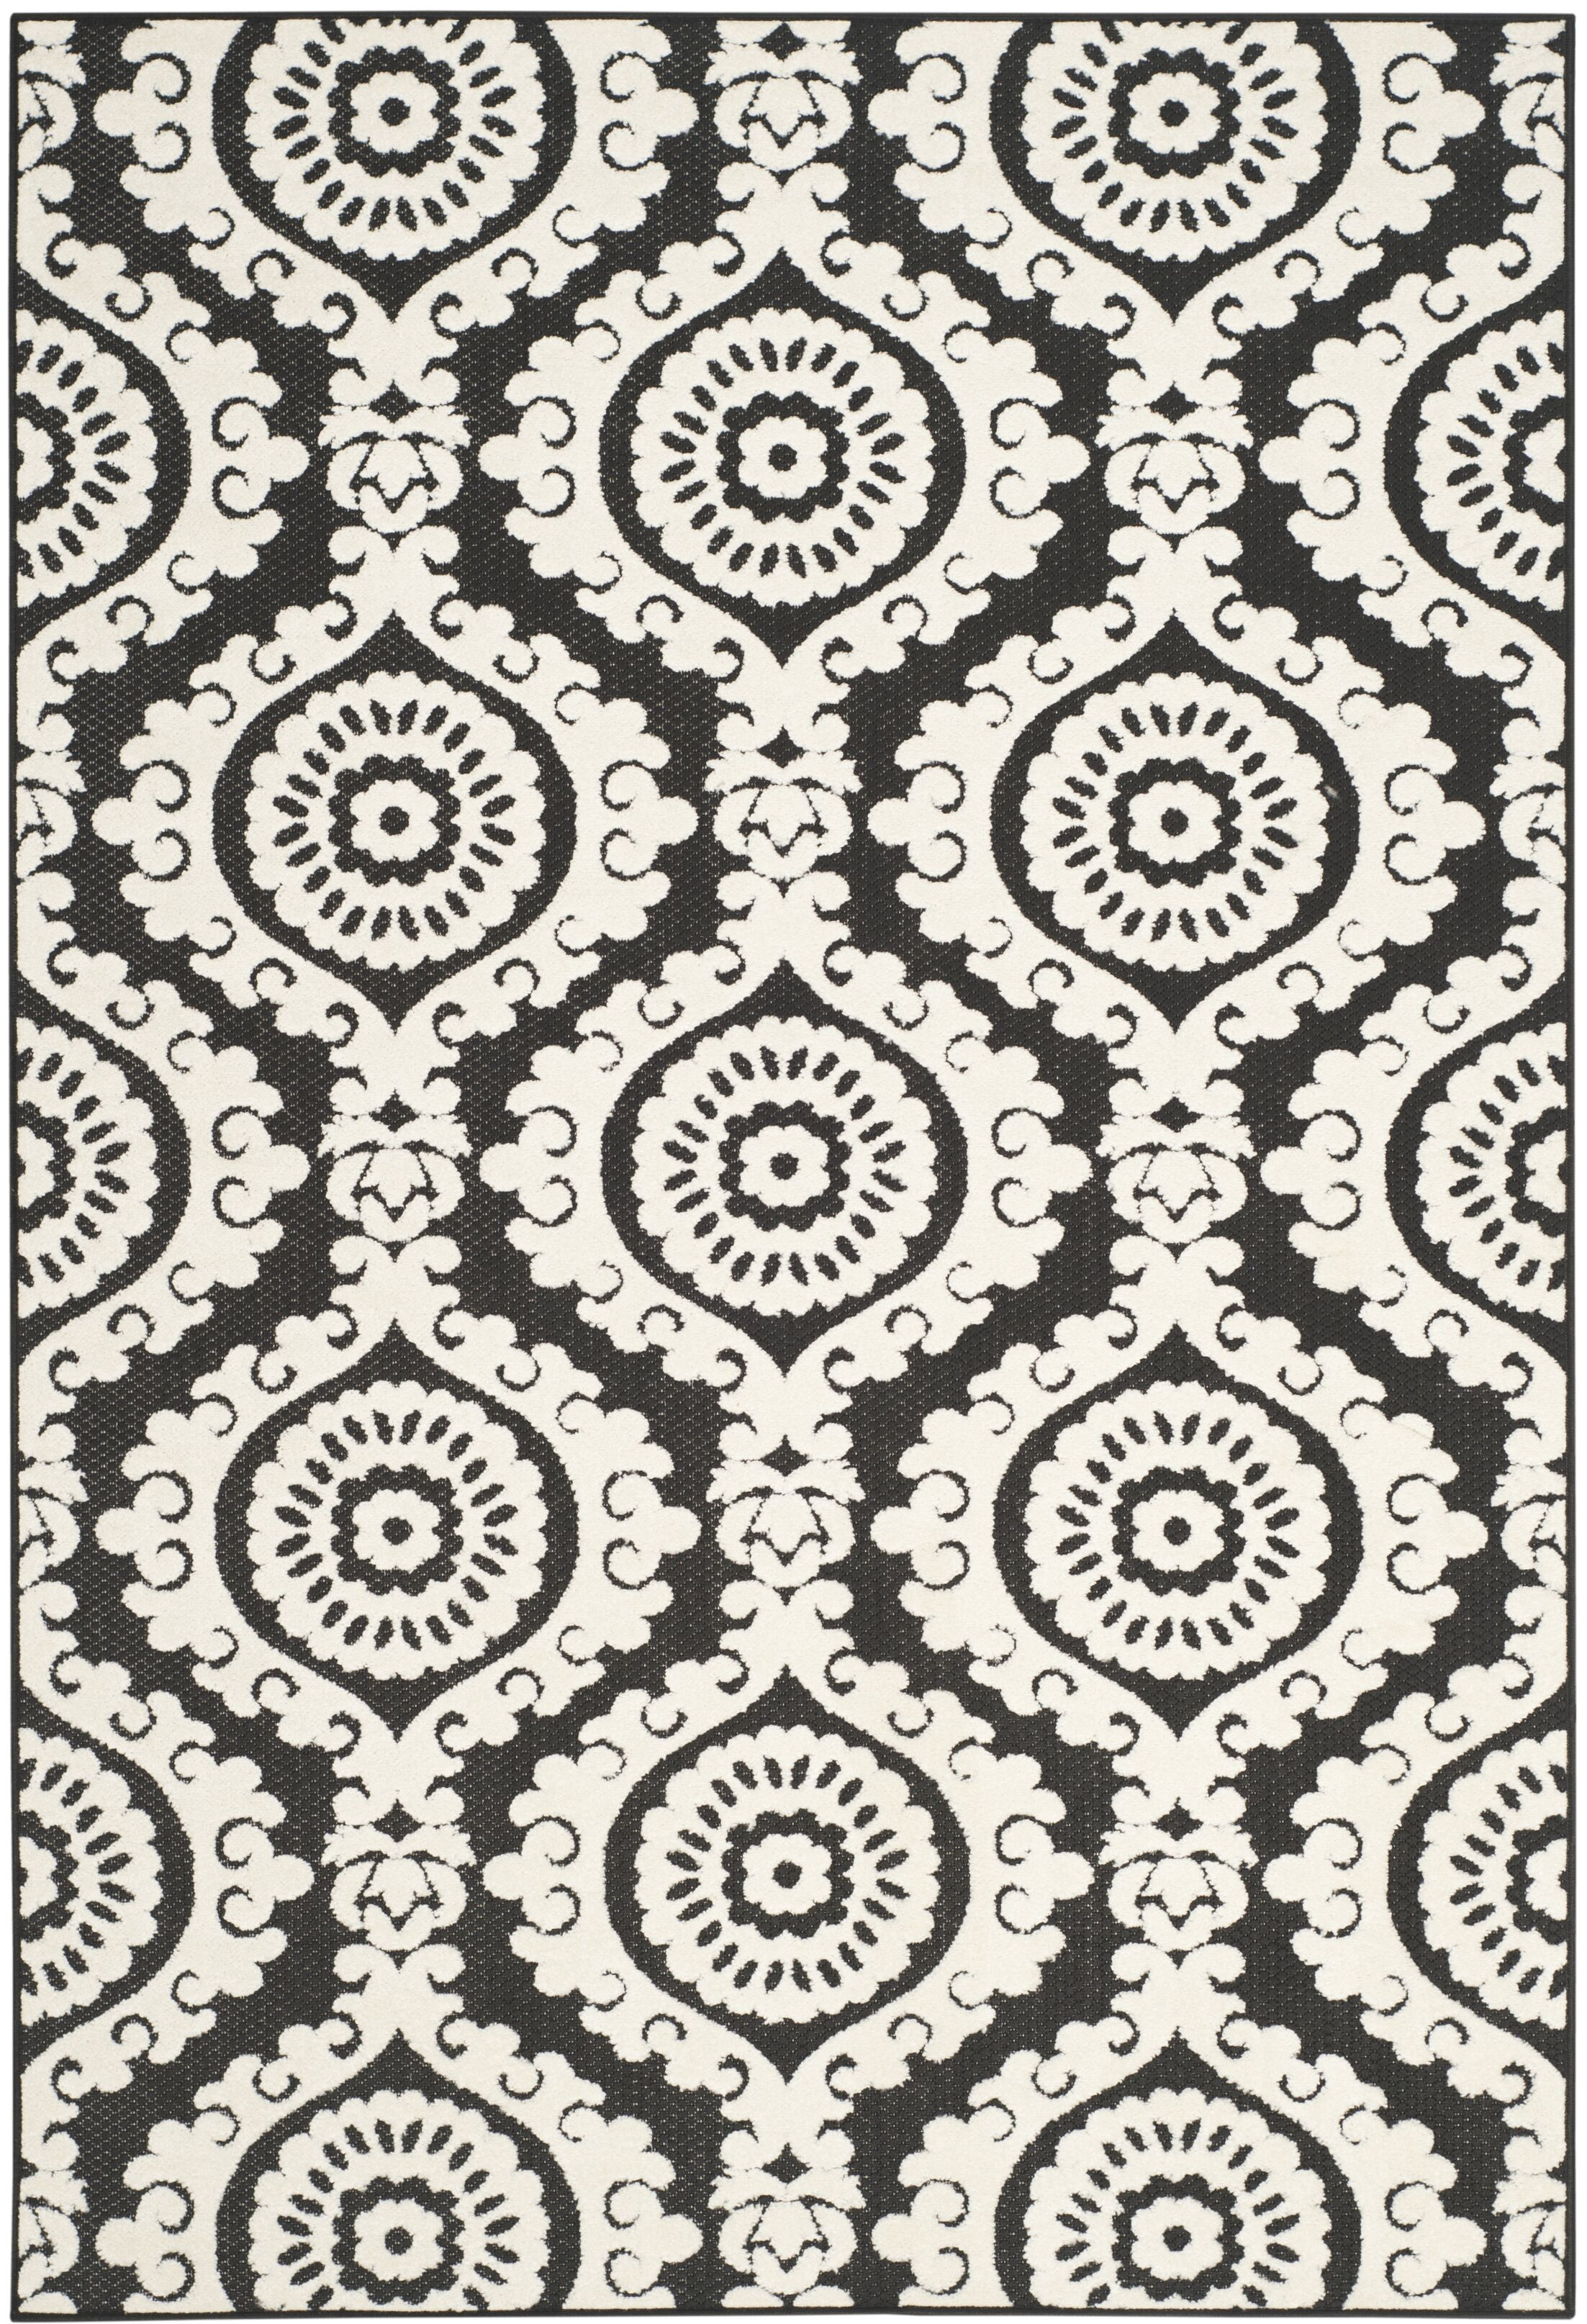 Deweese Black/Beige Area Rug Rug Size: Rectangle 5'3